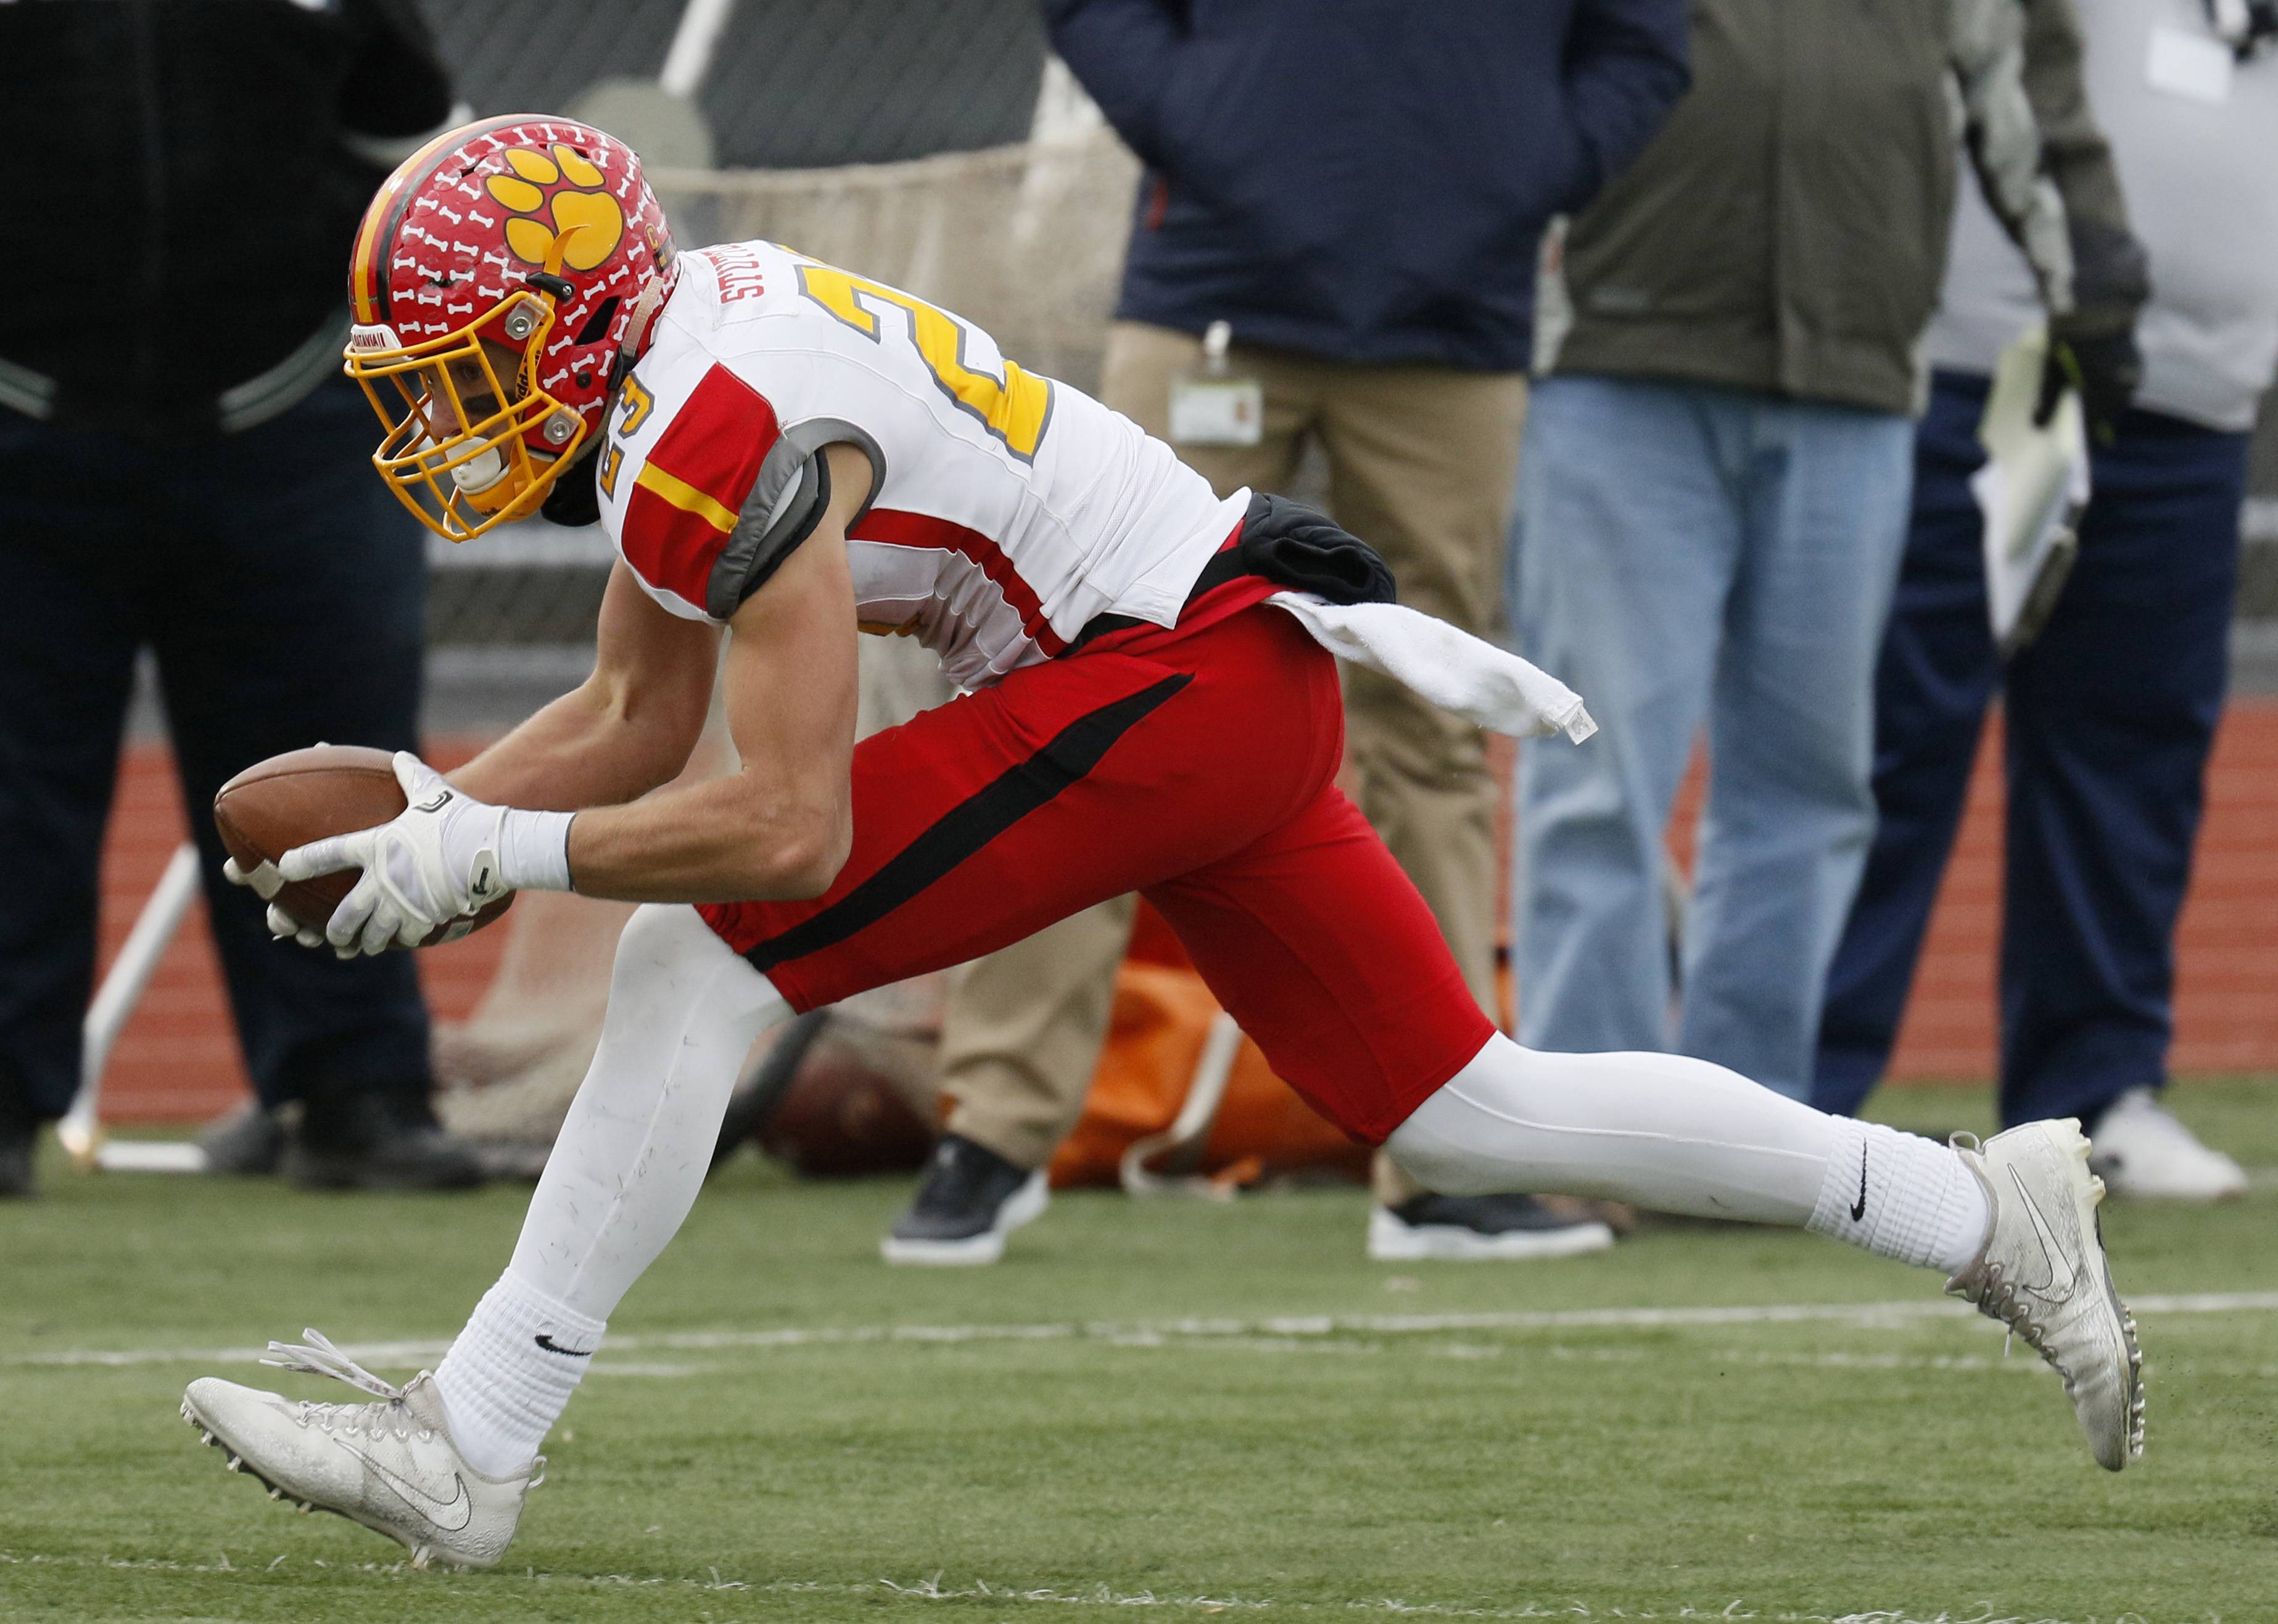 Batavia's Stuttle made the big plays at the right times